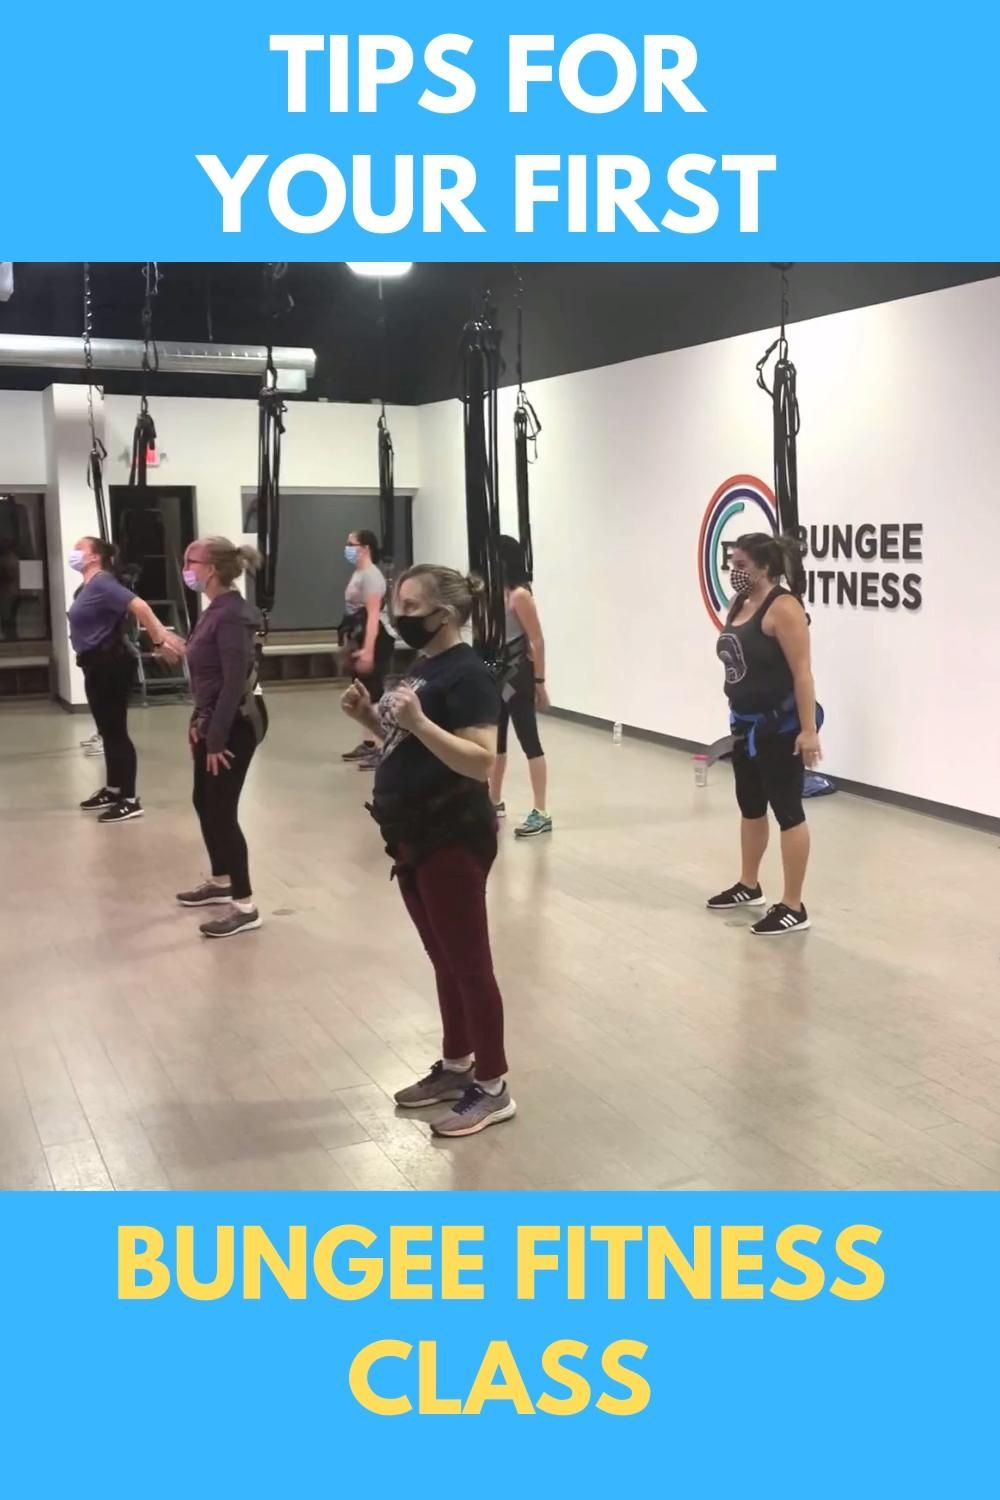 A Unique Way To Exercise At Fly Bungee Fitness Cincinnati Adventure Mom Video Video In 2021 Fitness Class Fun Workouts Bungee Workout